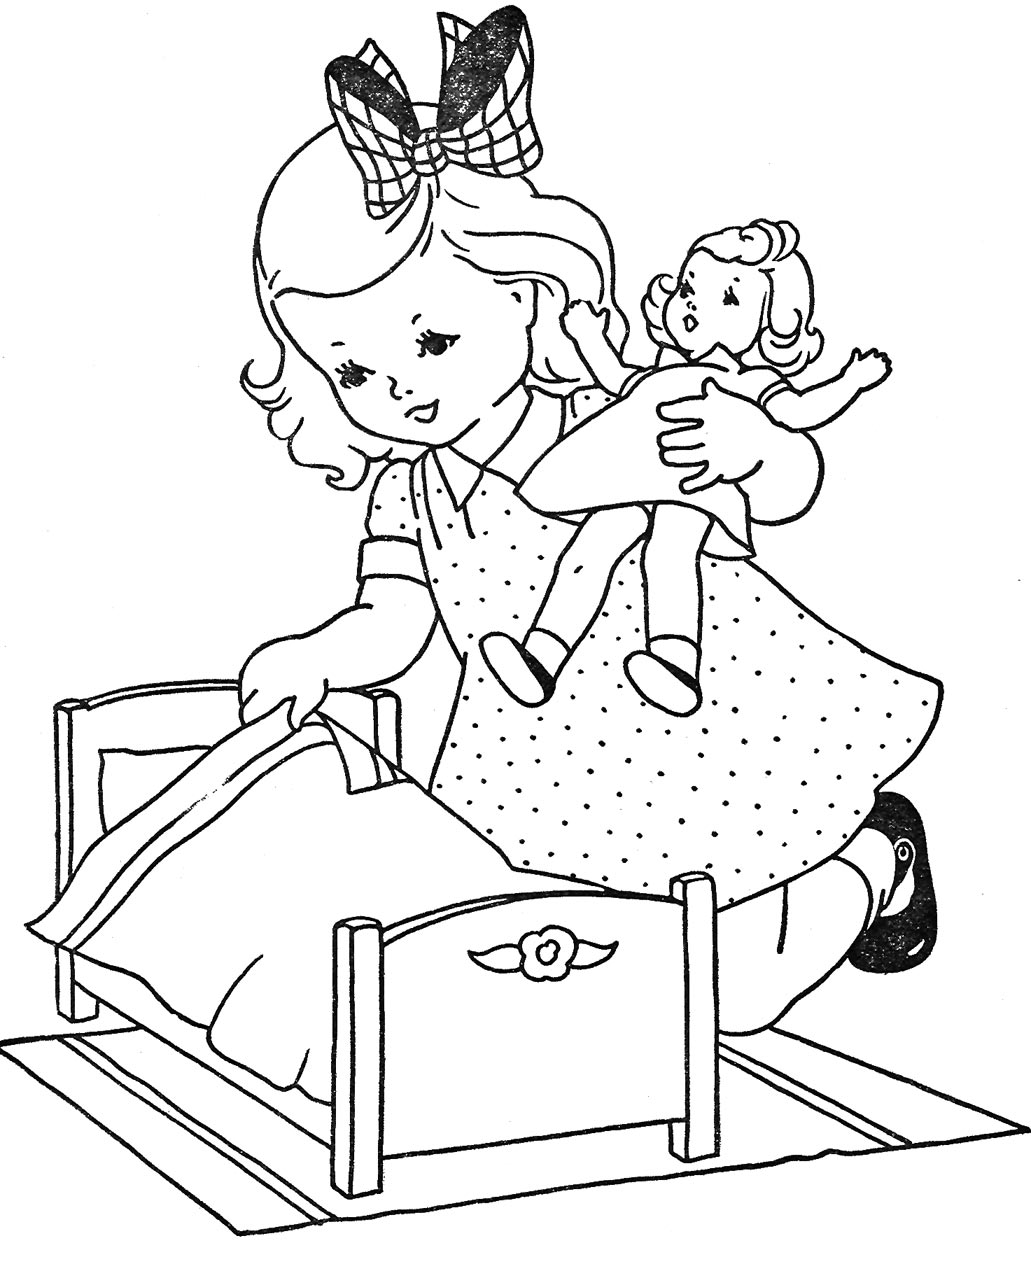 coloring pages for little girls favorite paint book little girls q is for quilter little girls coloring pages for